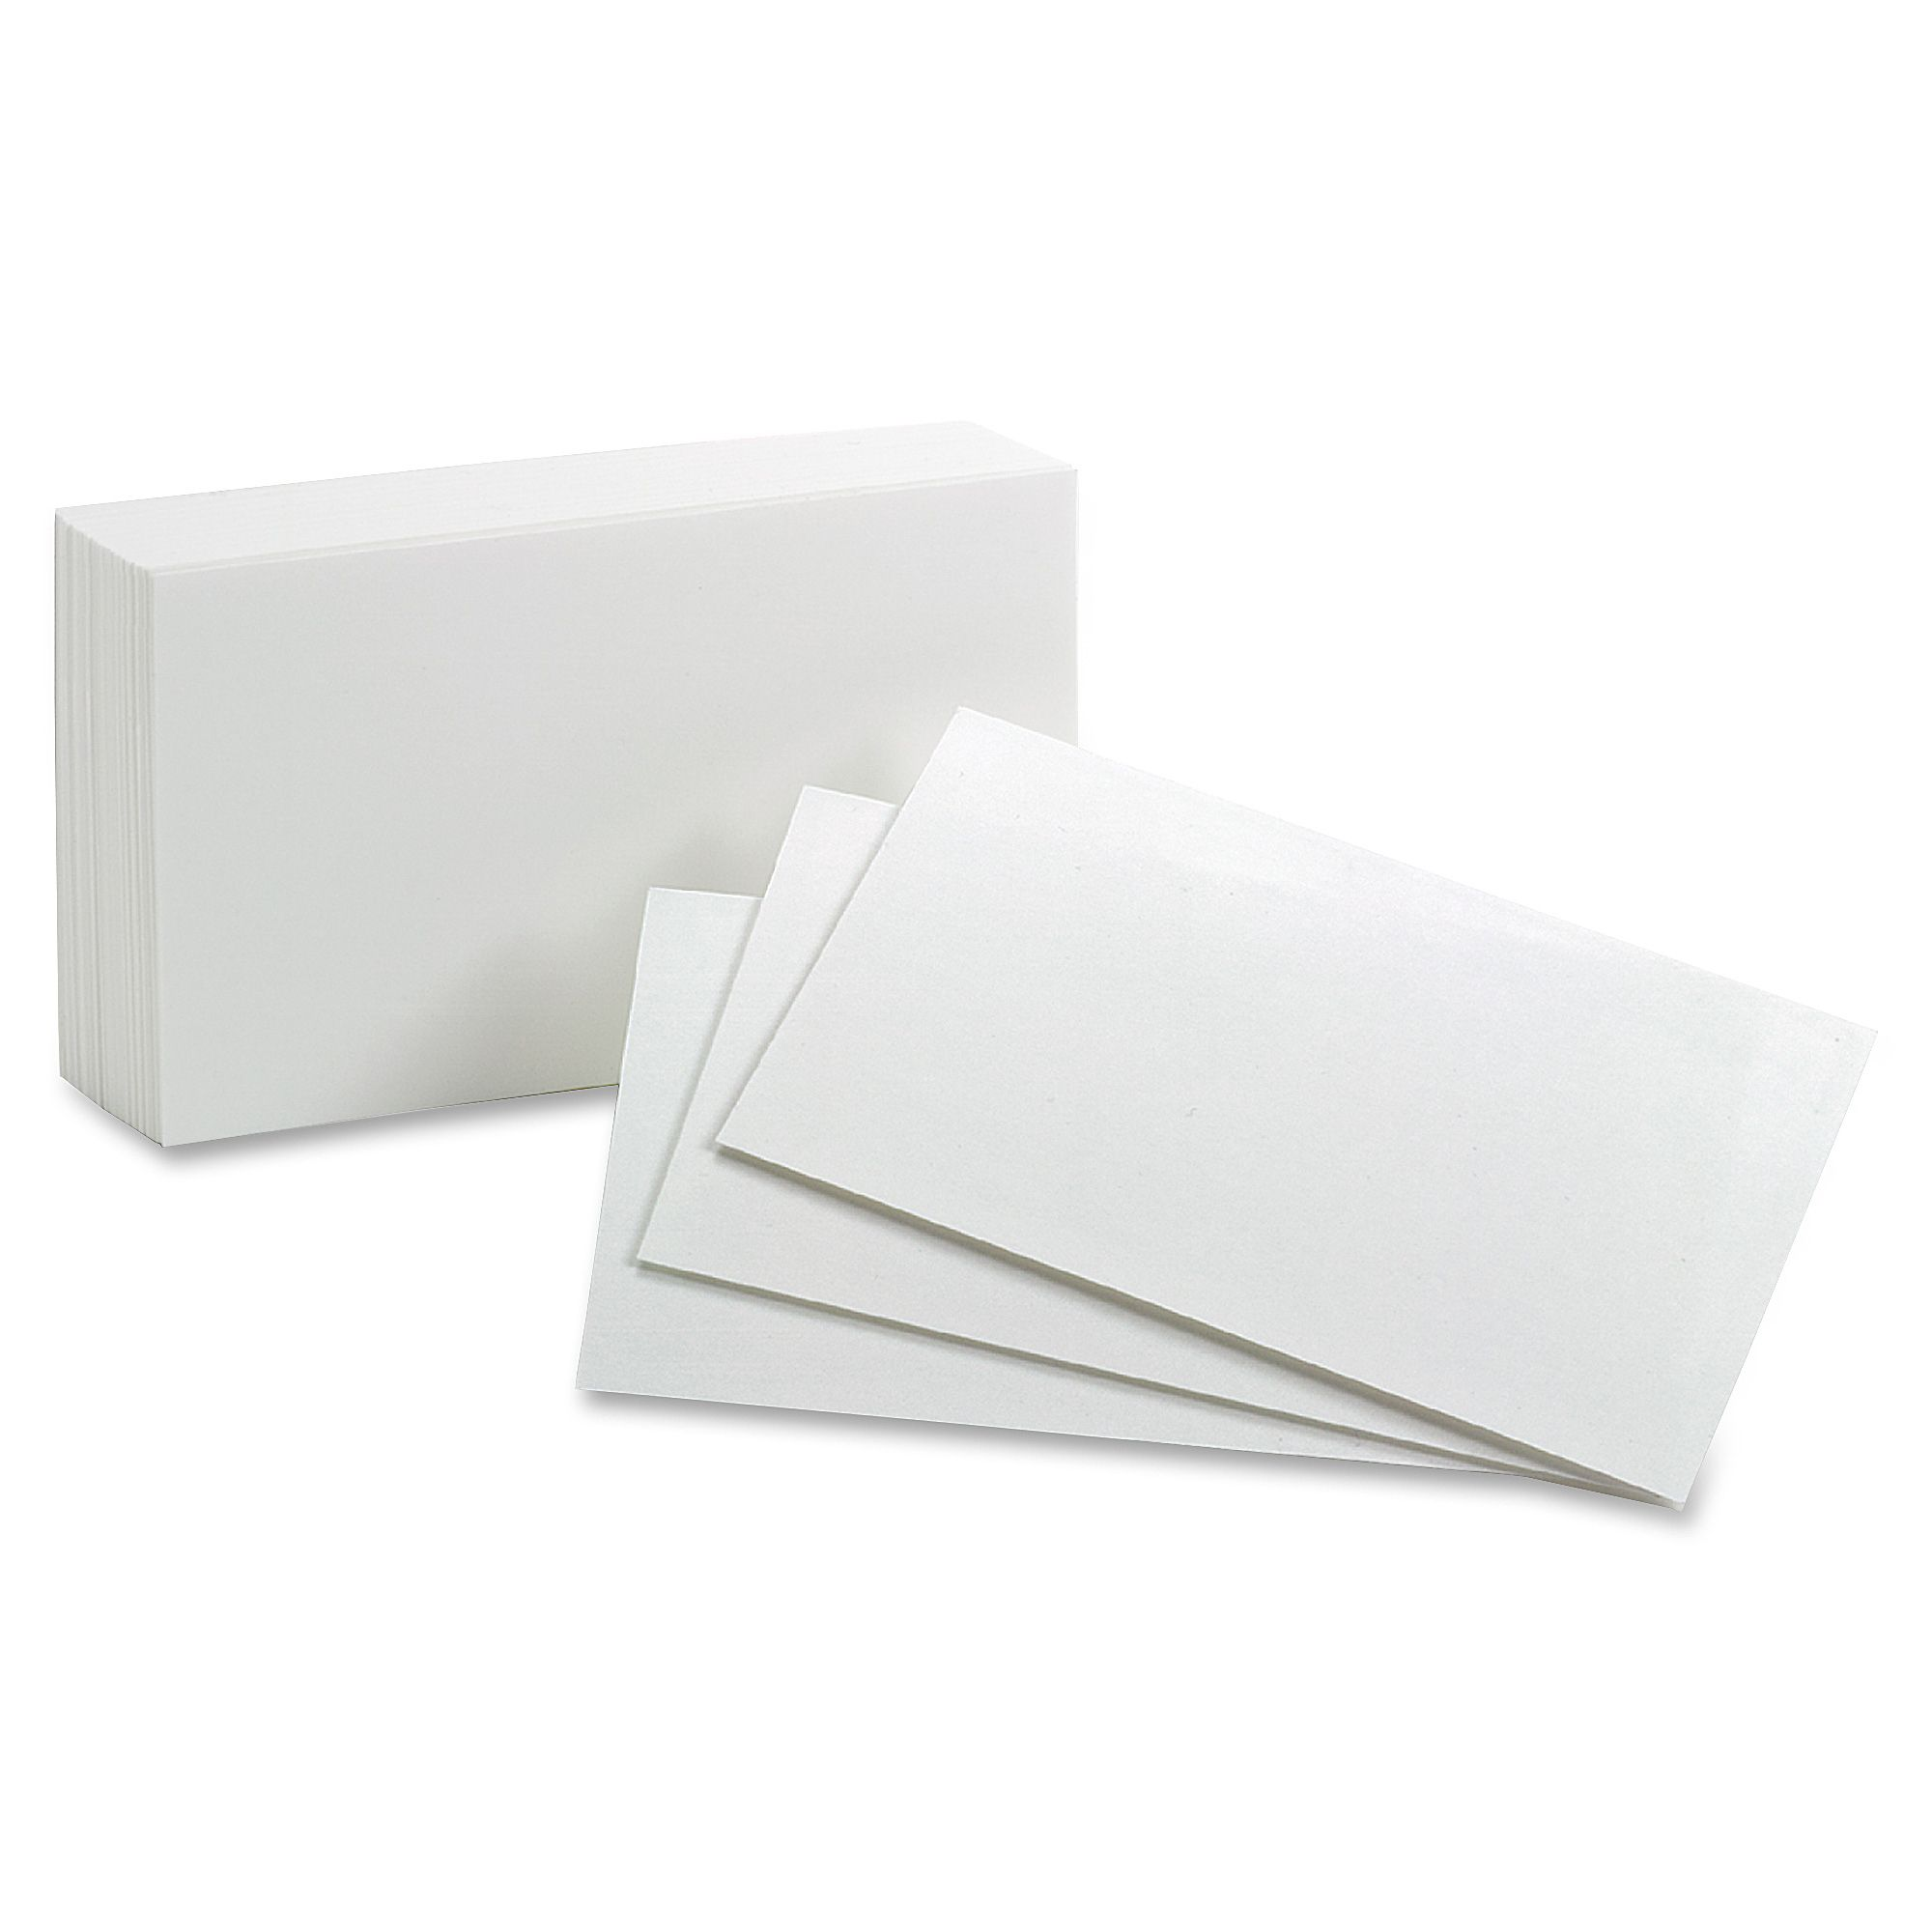 Oxford Printable Index Card 5 X 8 85 Lb Basis Weight 500 Box White For 5 By 8 Index Card Template In 2020 Card Template Professional Templates Index Cards